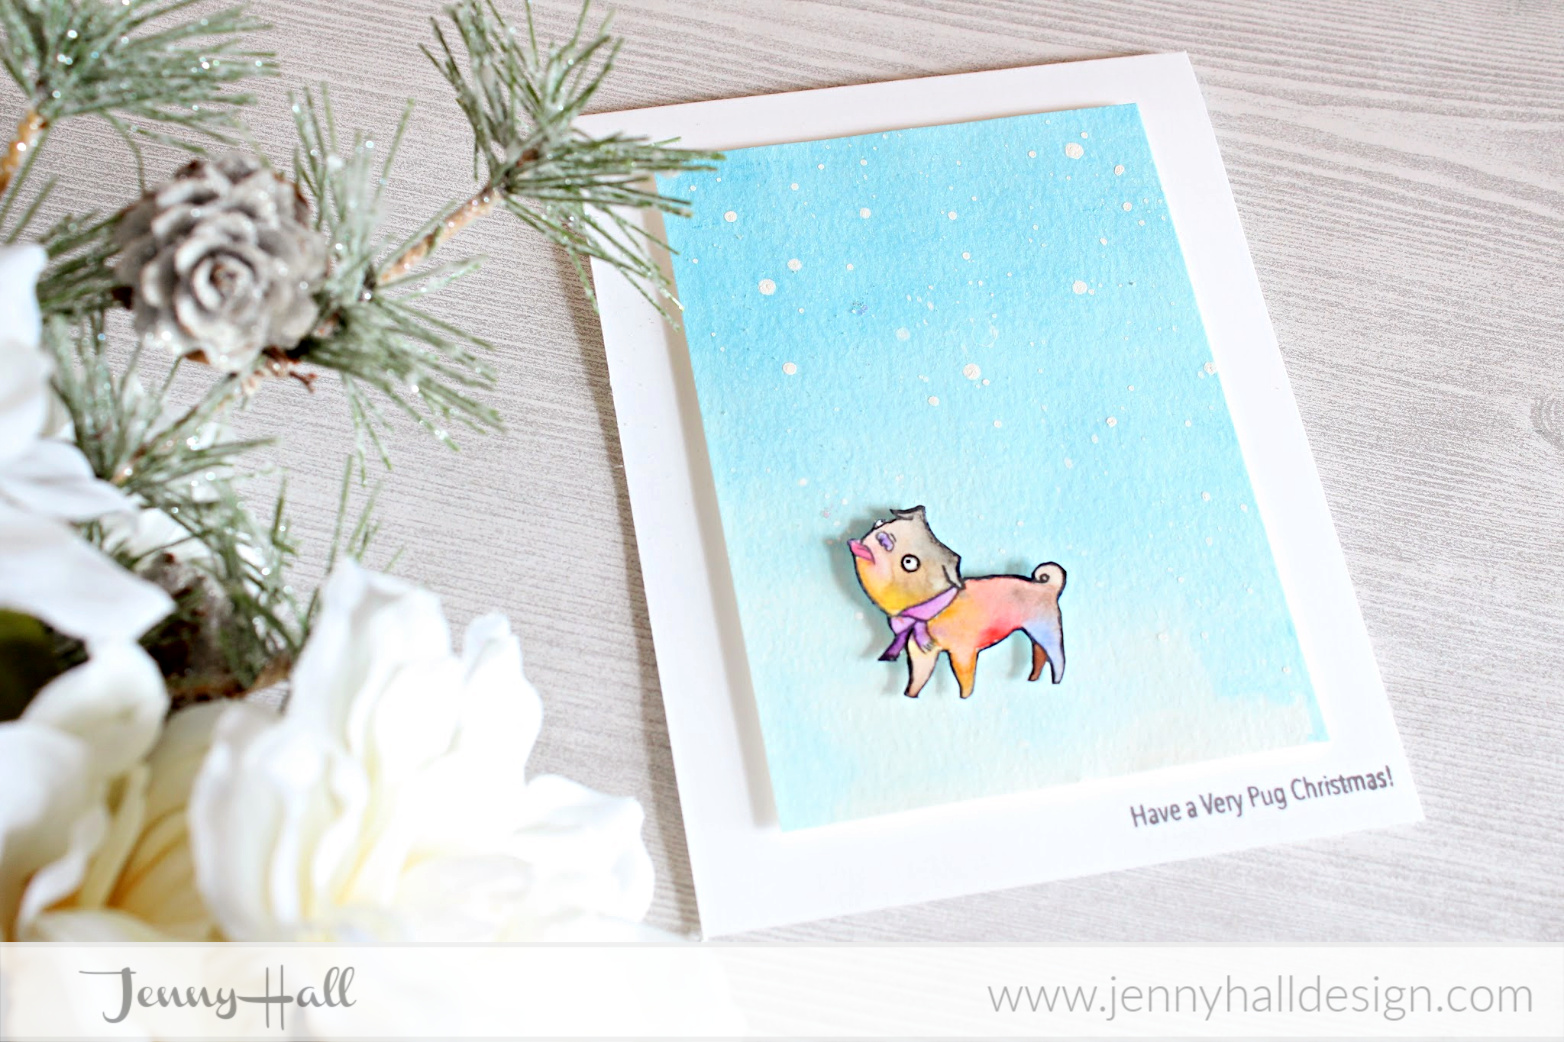 Watercolor Llama gift tag at www.jennyhalldesign.com #jennyhall #jennyhalldesign #jennystampsup #freecardmakingtutorial #freeartlesson #youtuber #crafty #papercrafter #stamping #cardmaking #greetingcard #artsandcrafts #christiancrafts #craftsforkids #cardmakingtechnique #Idarosestamps #pugchristmas #artezawatercolorsreview #artezareview #watercolorwash #christmasinjuly